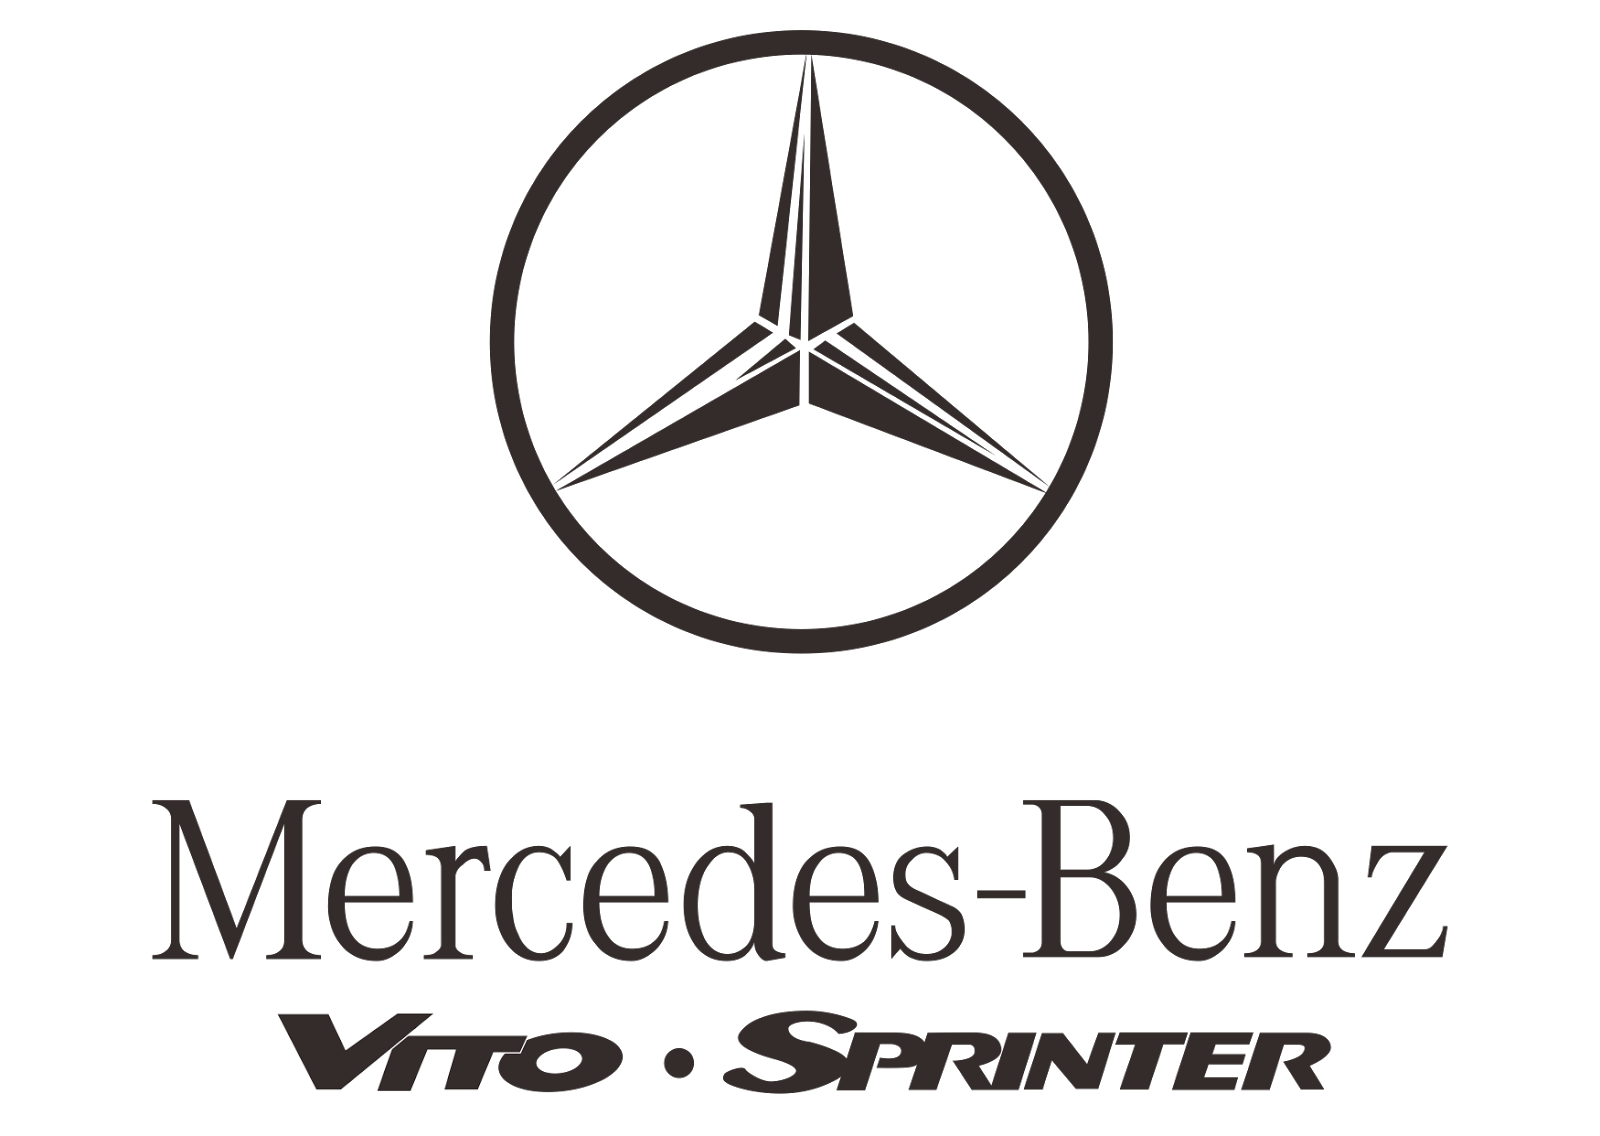 Mercedes-benz eps